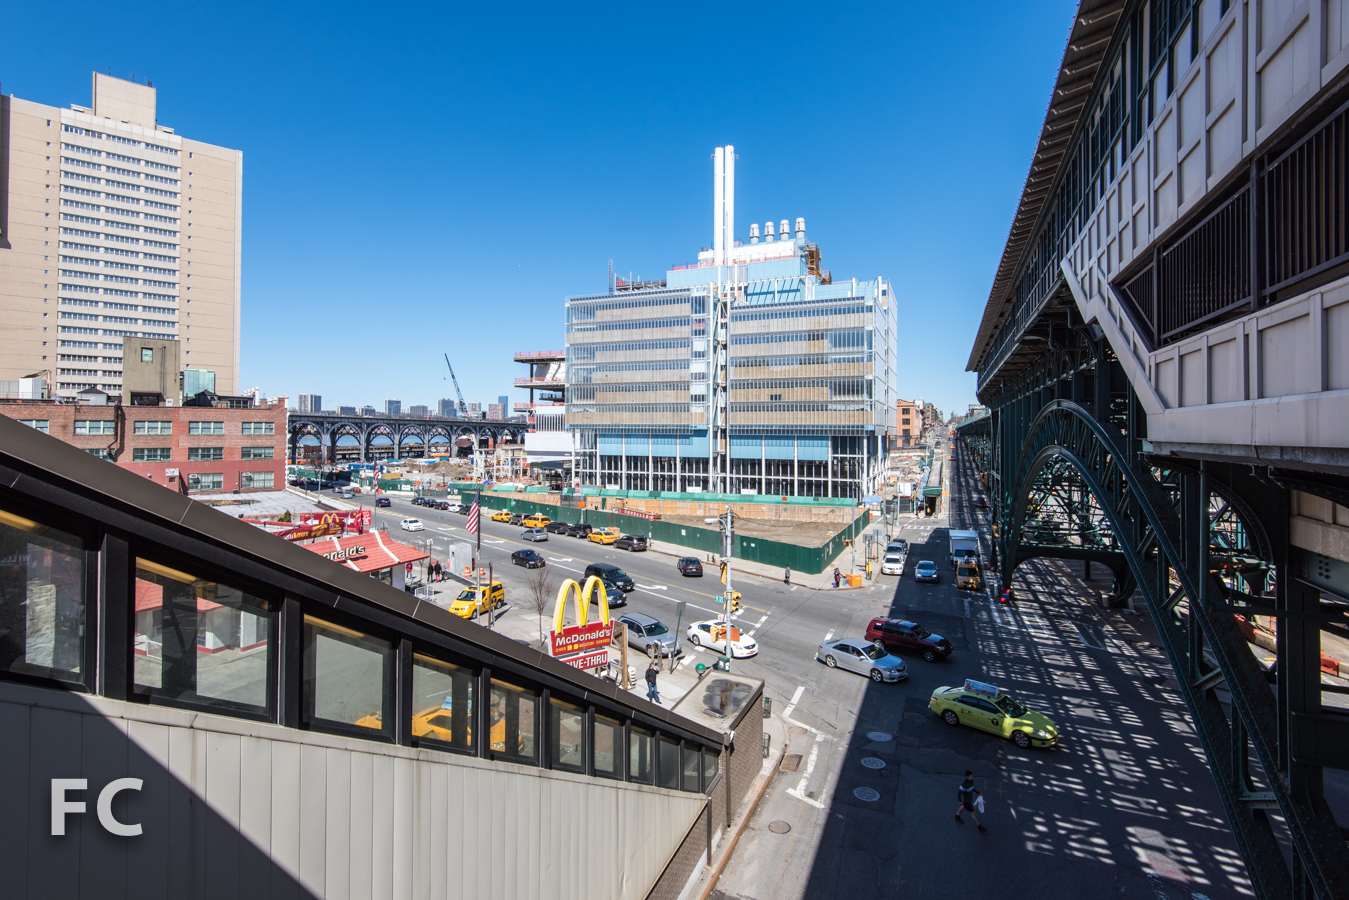 South facade of the Science Center from the 125th Street subway station.